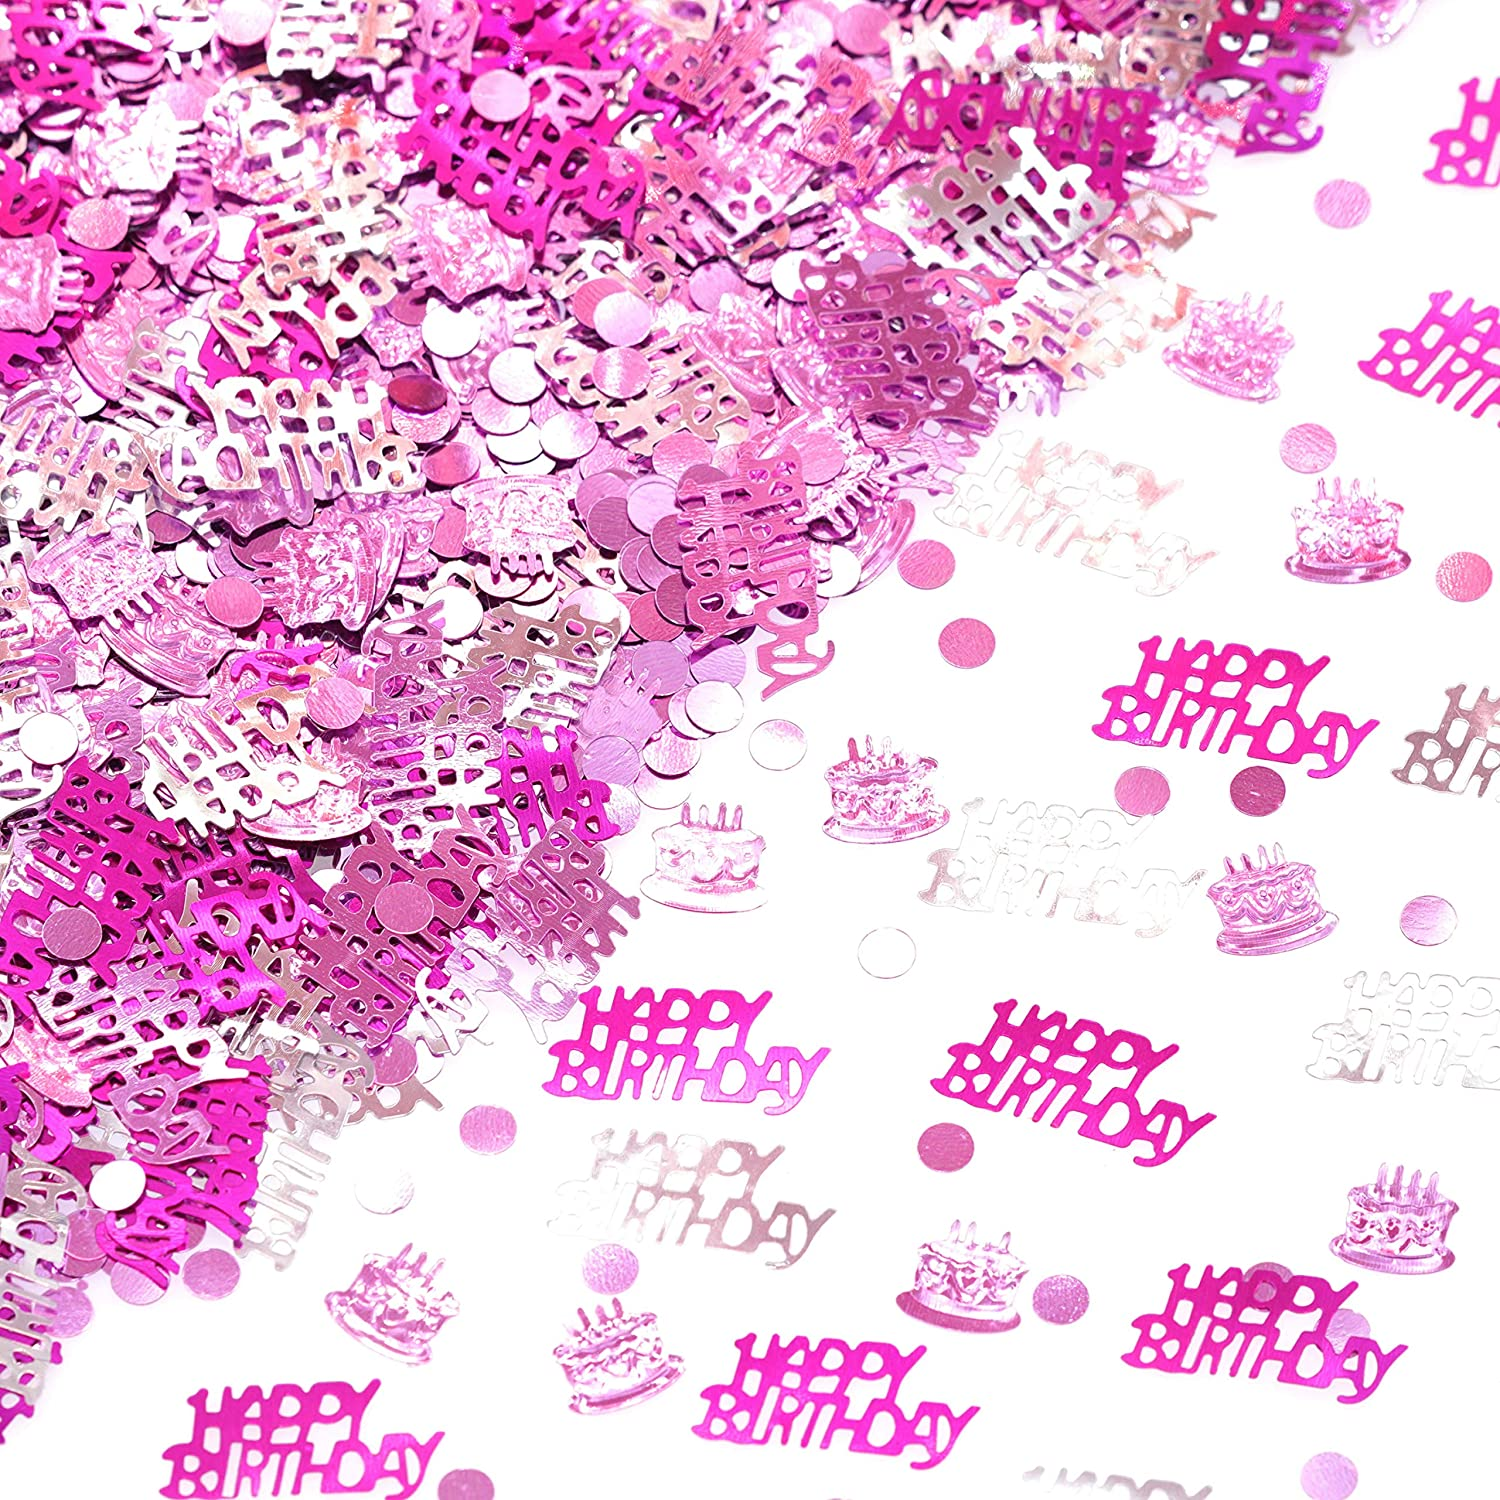 Happy Birthday Party Table Confetti - Hot Pink Purple Foil Metallic Sequins Confetti First Baby Shower Birthday Nursery Party Sprinkles Confetti Decorations, 60g